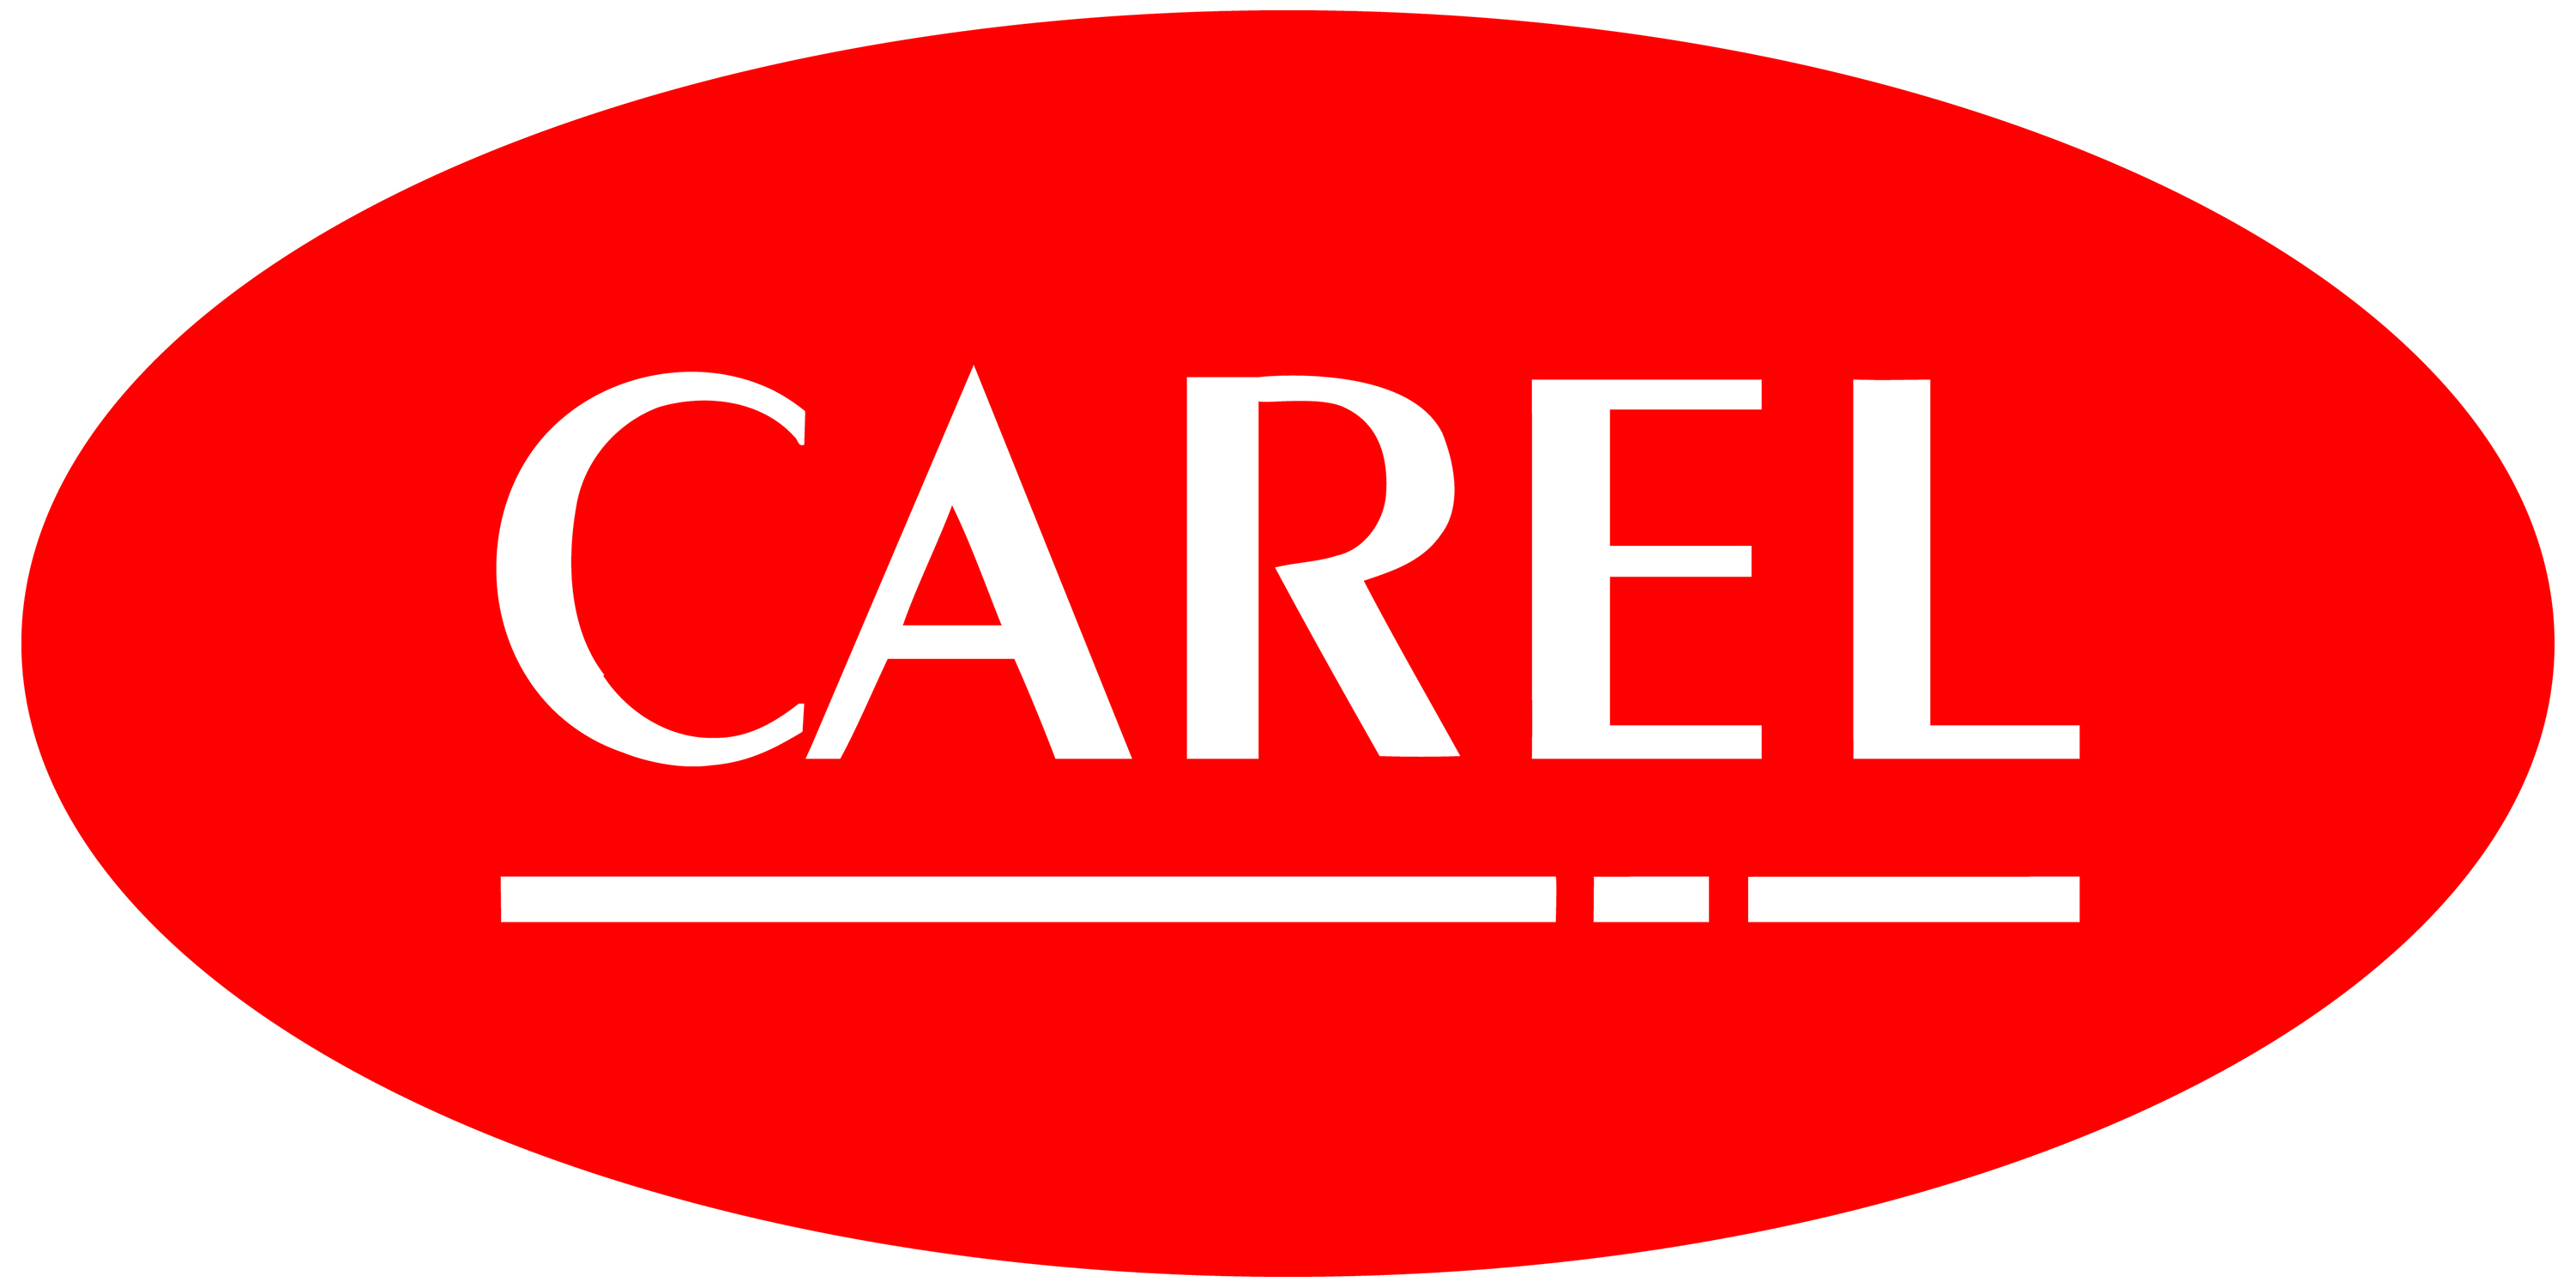 CAREL - News